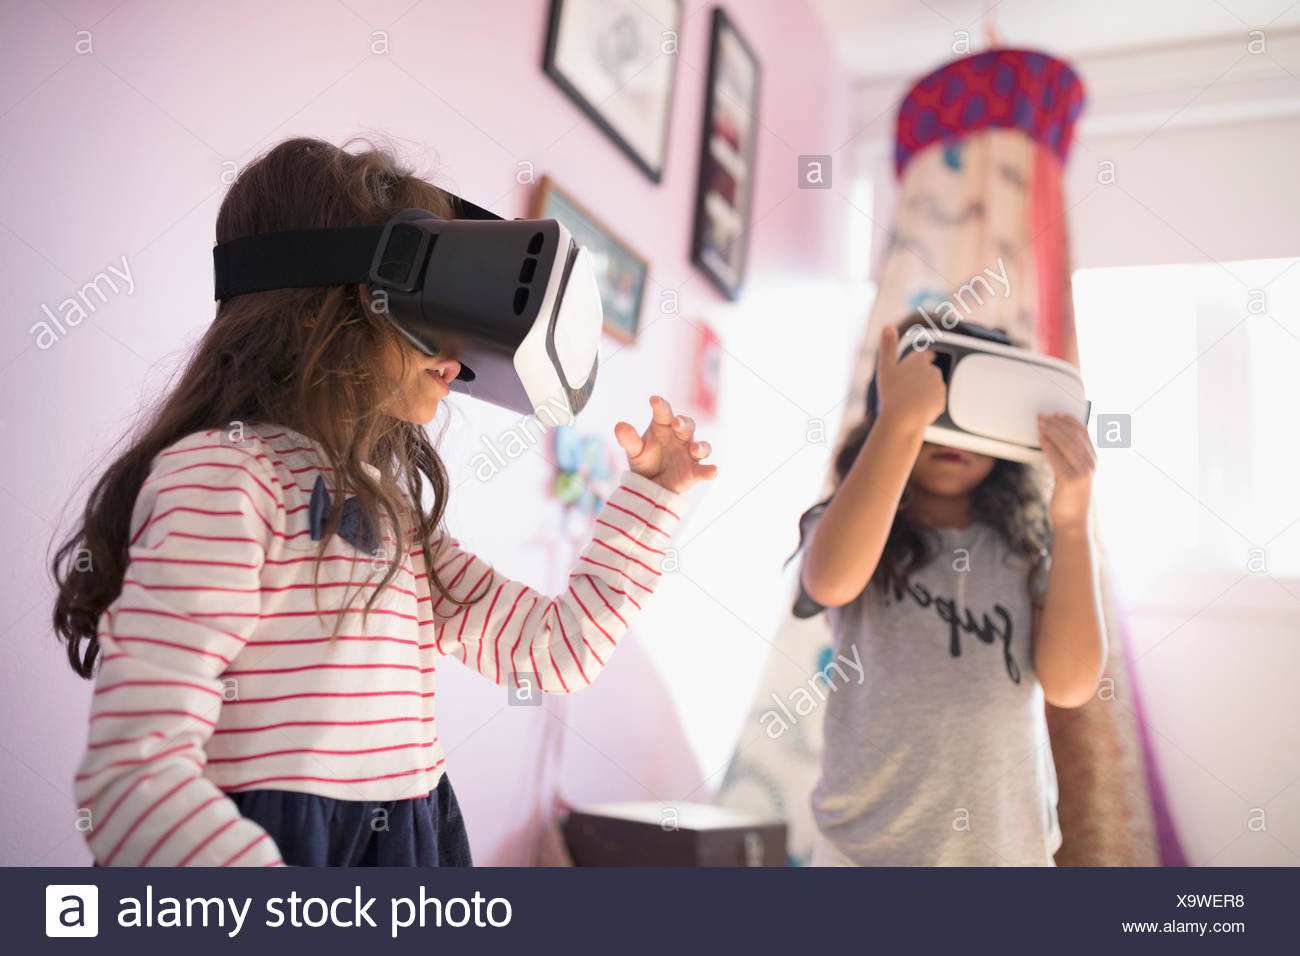 Girl sisters playing with virtual reality simulator glasses in bedroom - Stock Image